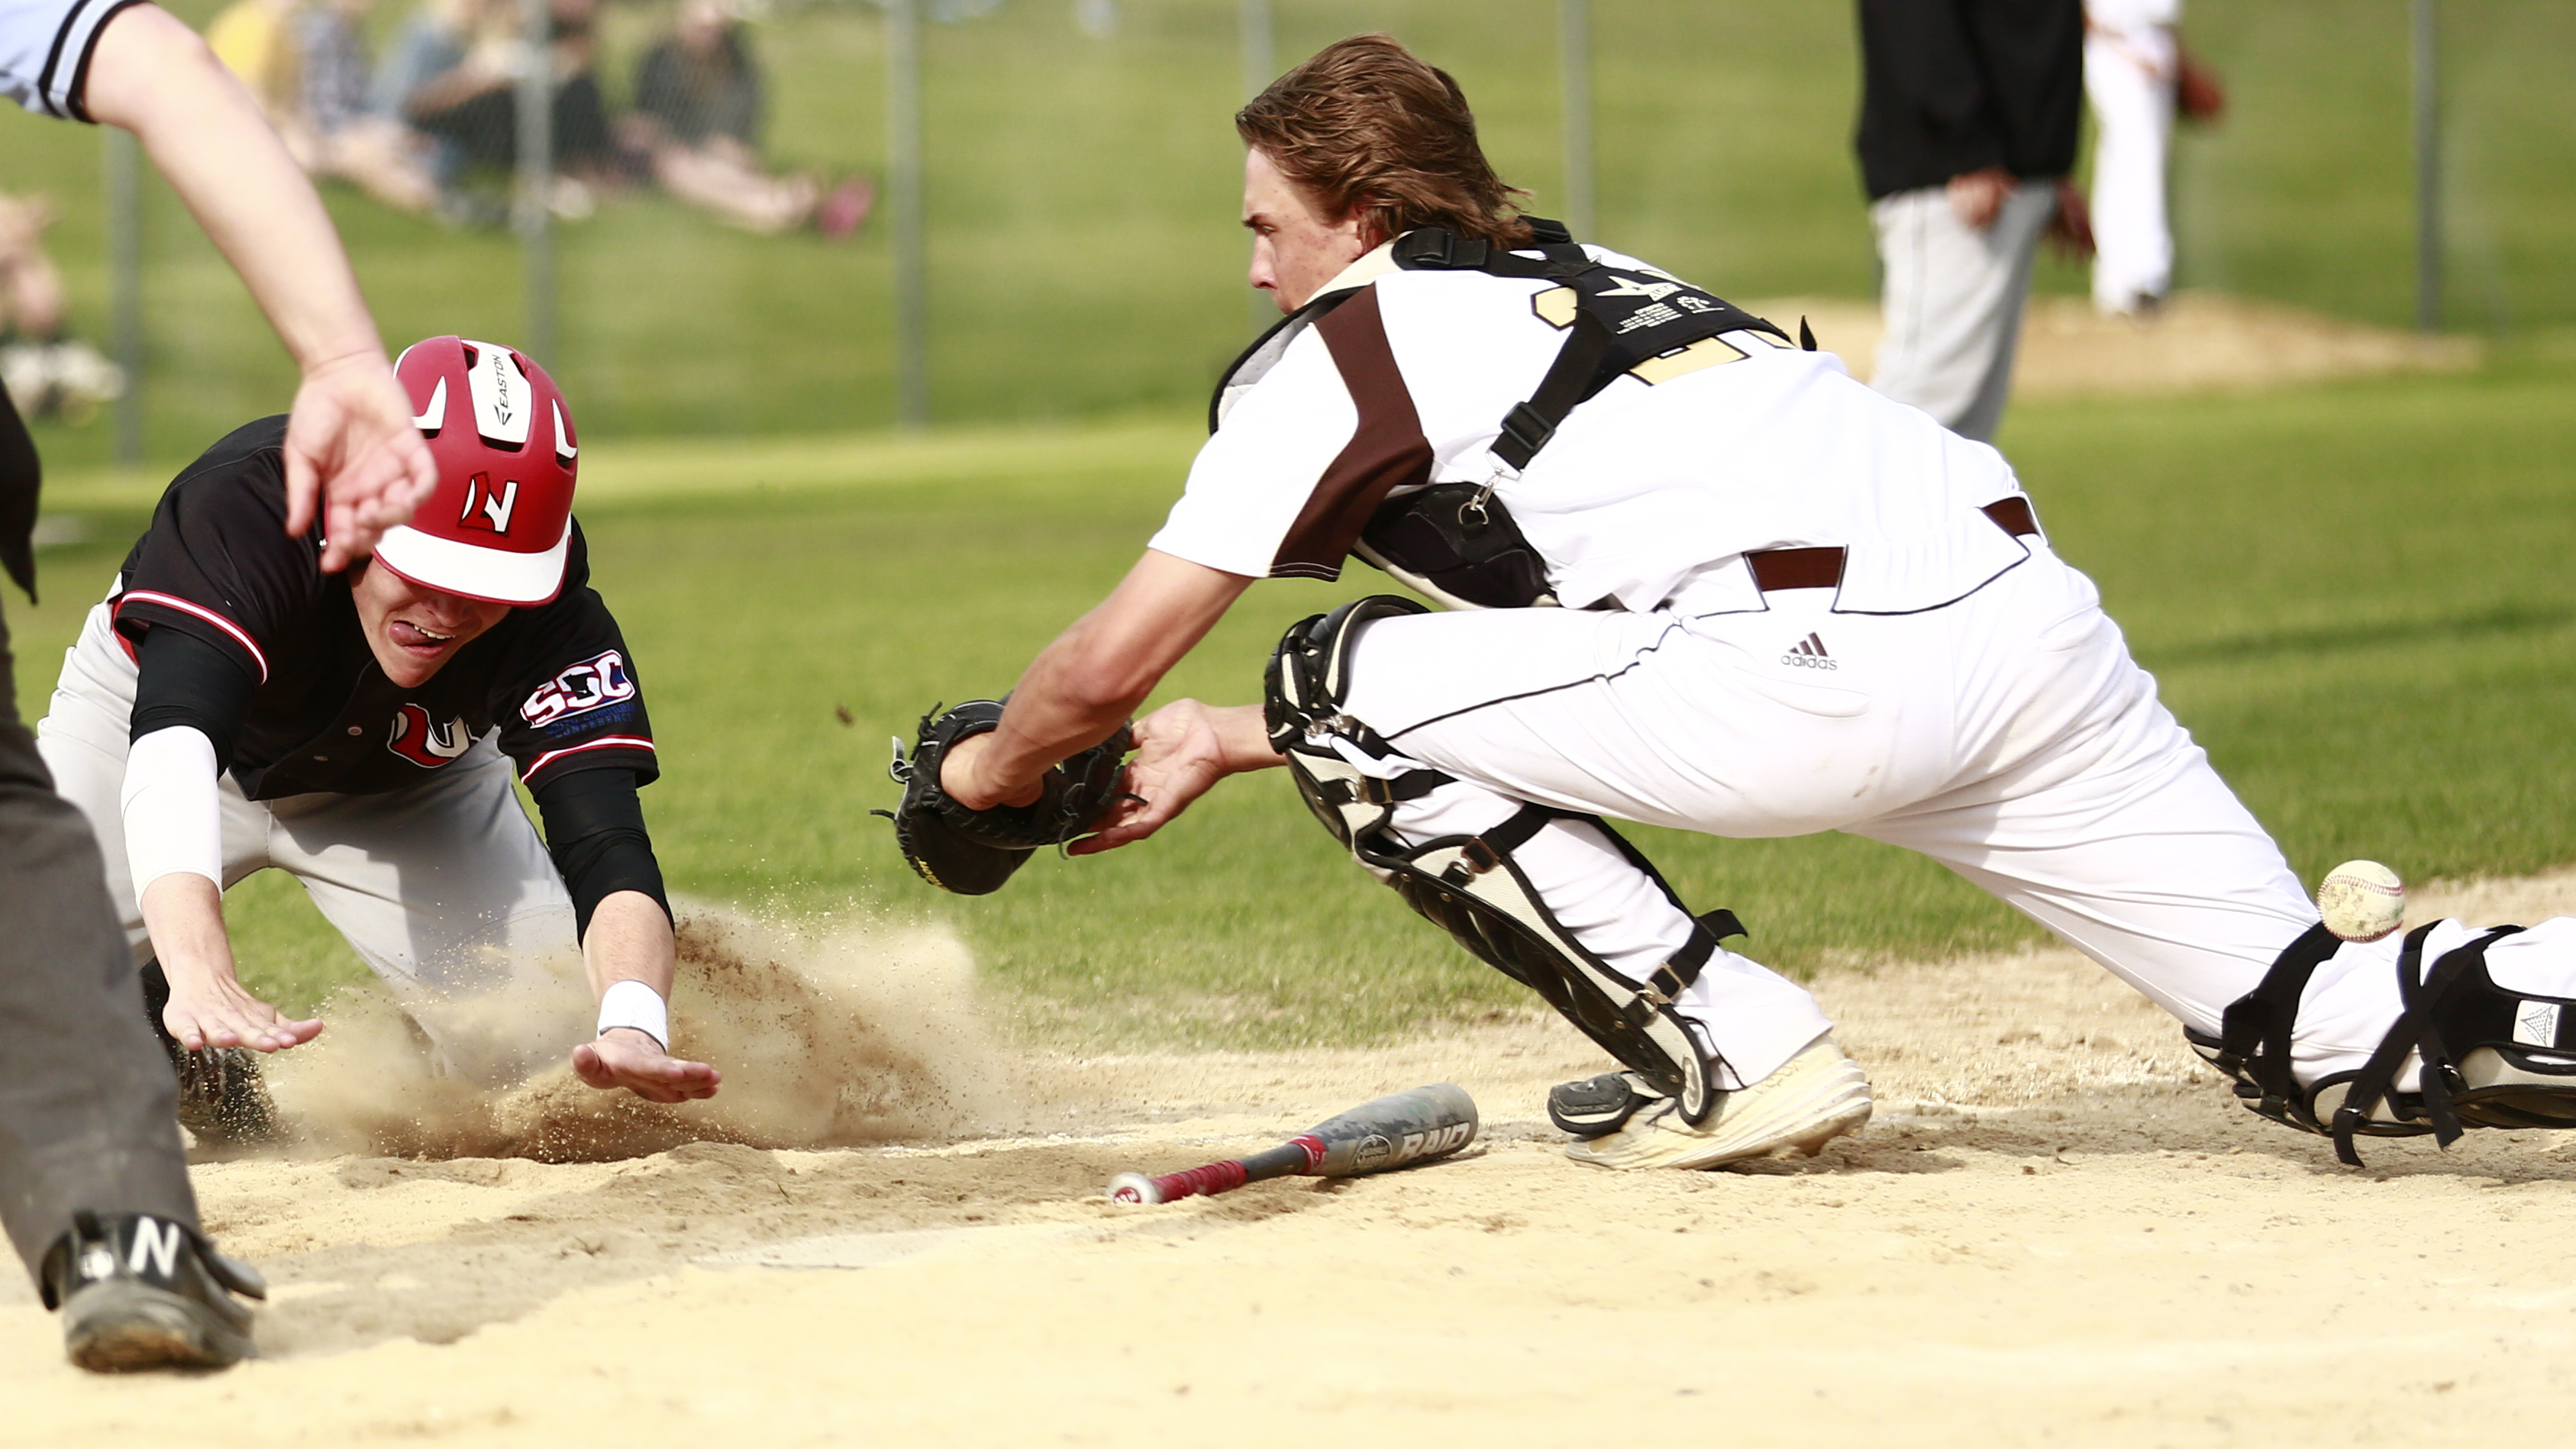 A close call ended in a run scored by Lakeville North. Photo by Chris Juhn